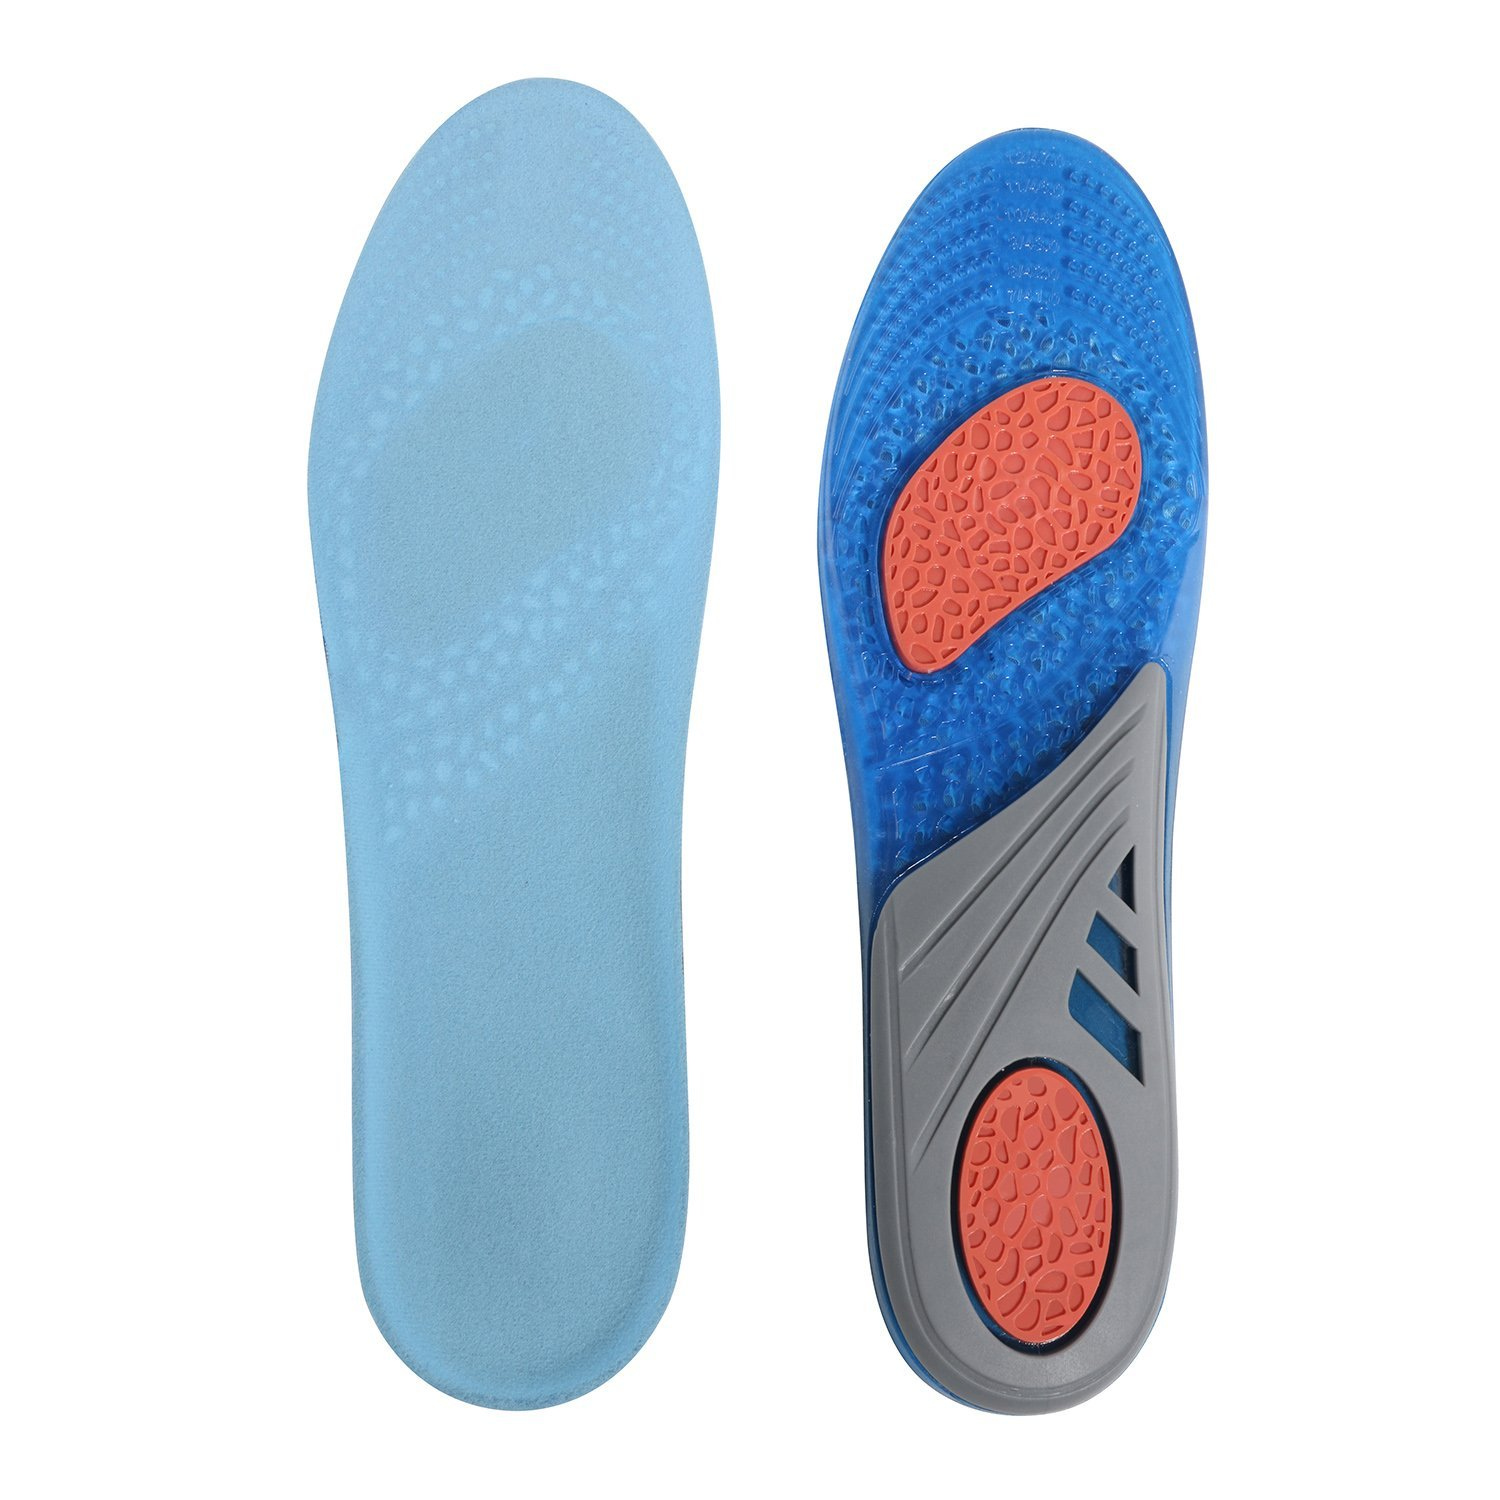 0123bf5729be1b Get Quotations · Gel shoe Insoles Full Length Comfort Insert Insoles for Men  and Women Shock Absorbing Gel Insoles